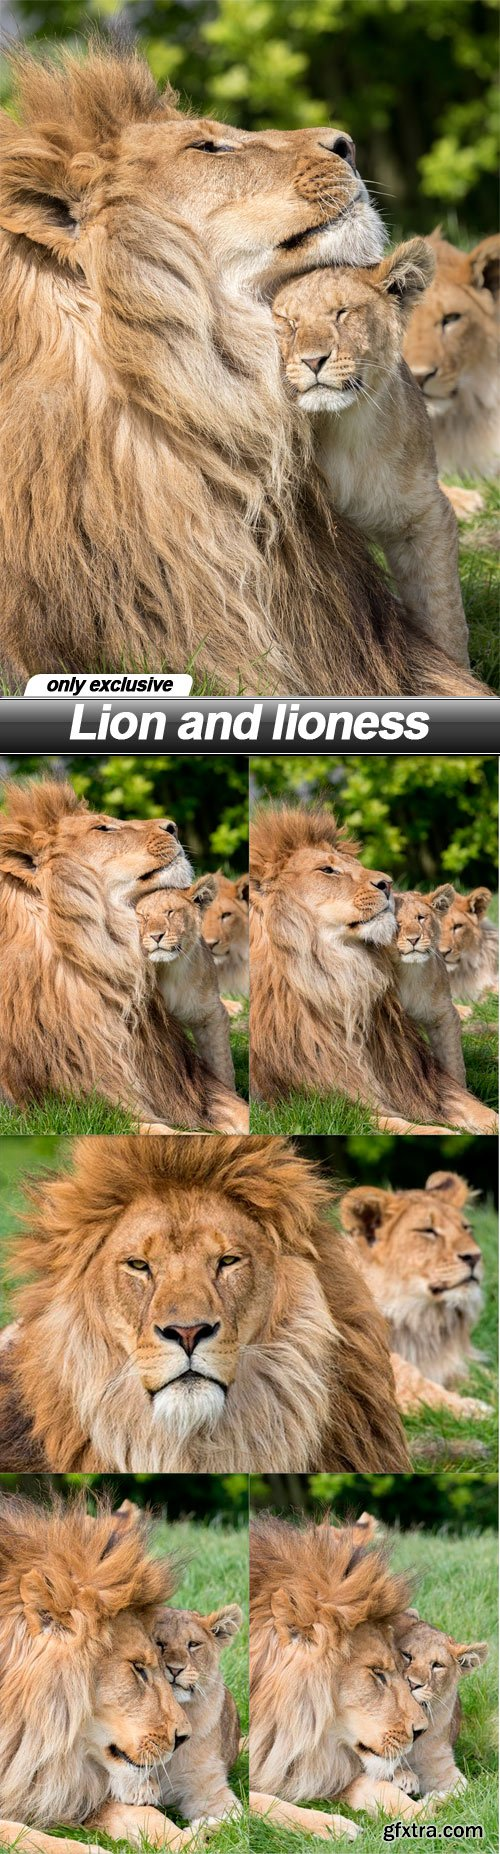 Lion and lioness - 5 UHQ JPEG